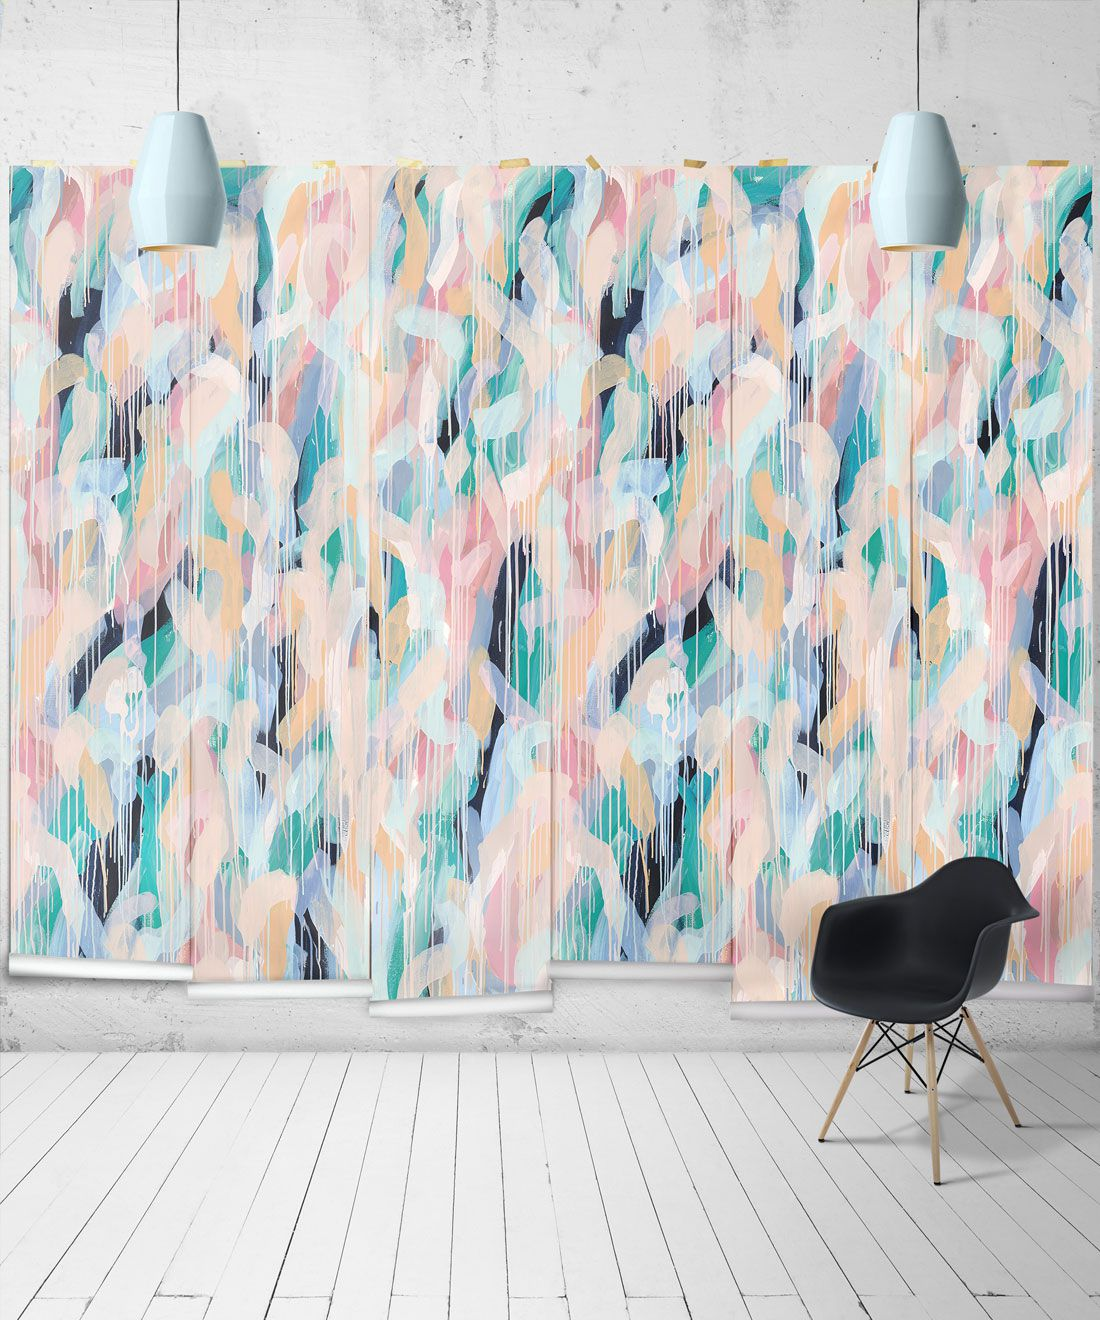 Blue Moon Wallpaper •Colorful Painterly Wallpaper • Tiff Manuell • Abstract Expressionist Wallpaper • Wide Insitu